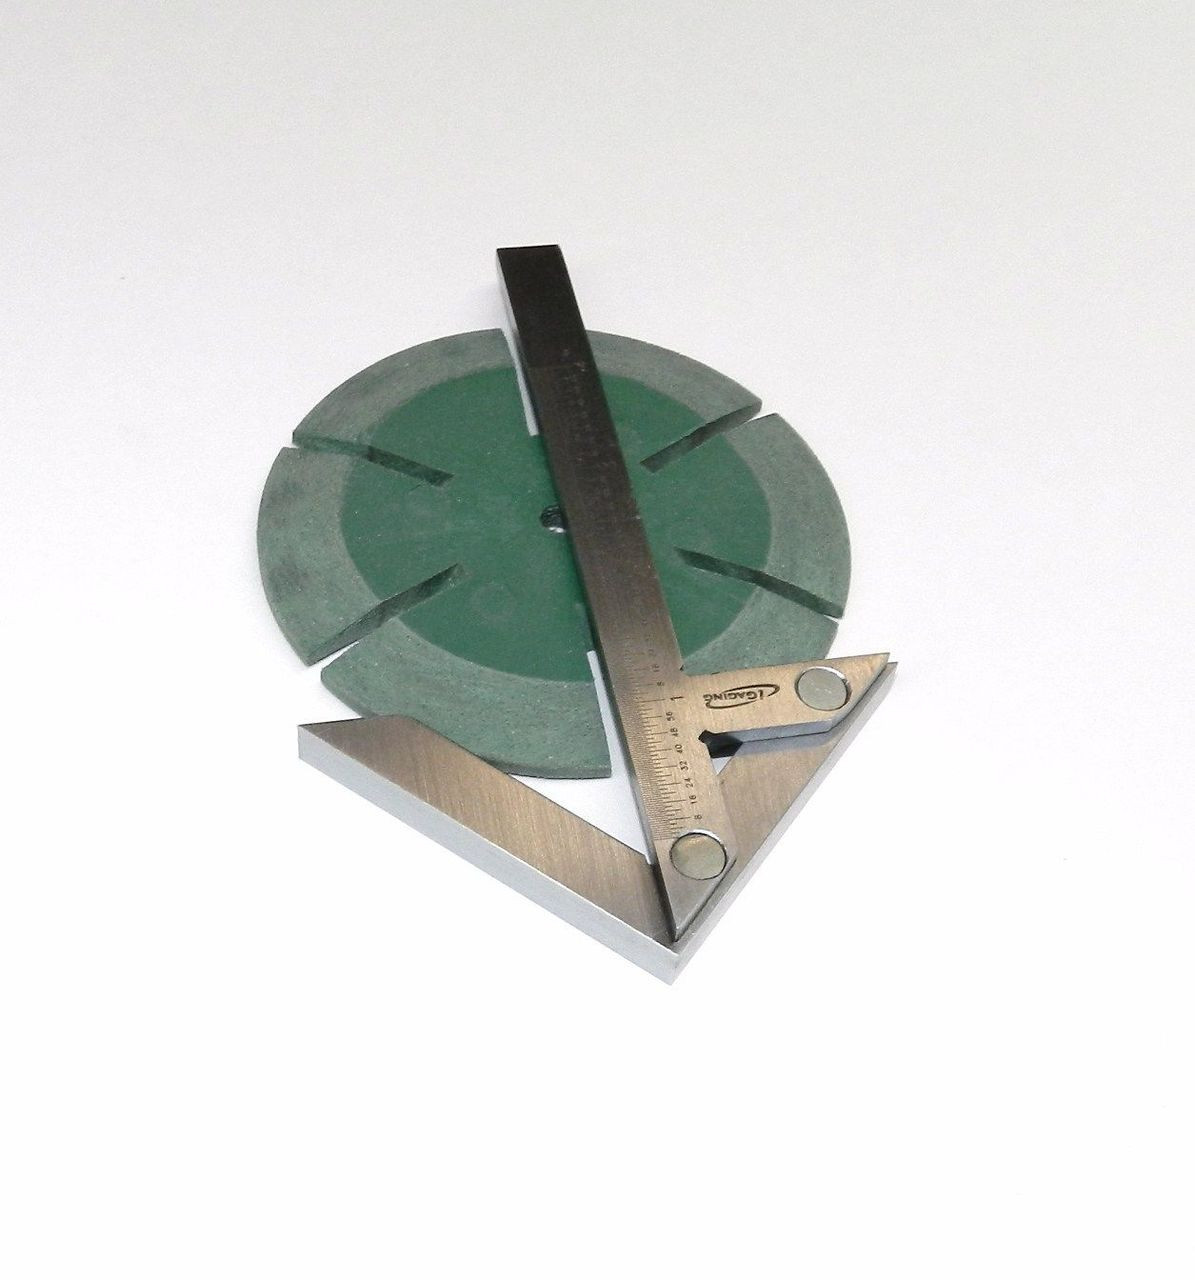 "Centering Square 4"" iGaging Center Gauge Round Bar Center Finder Precision S.S."